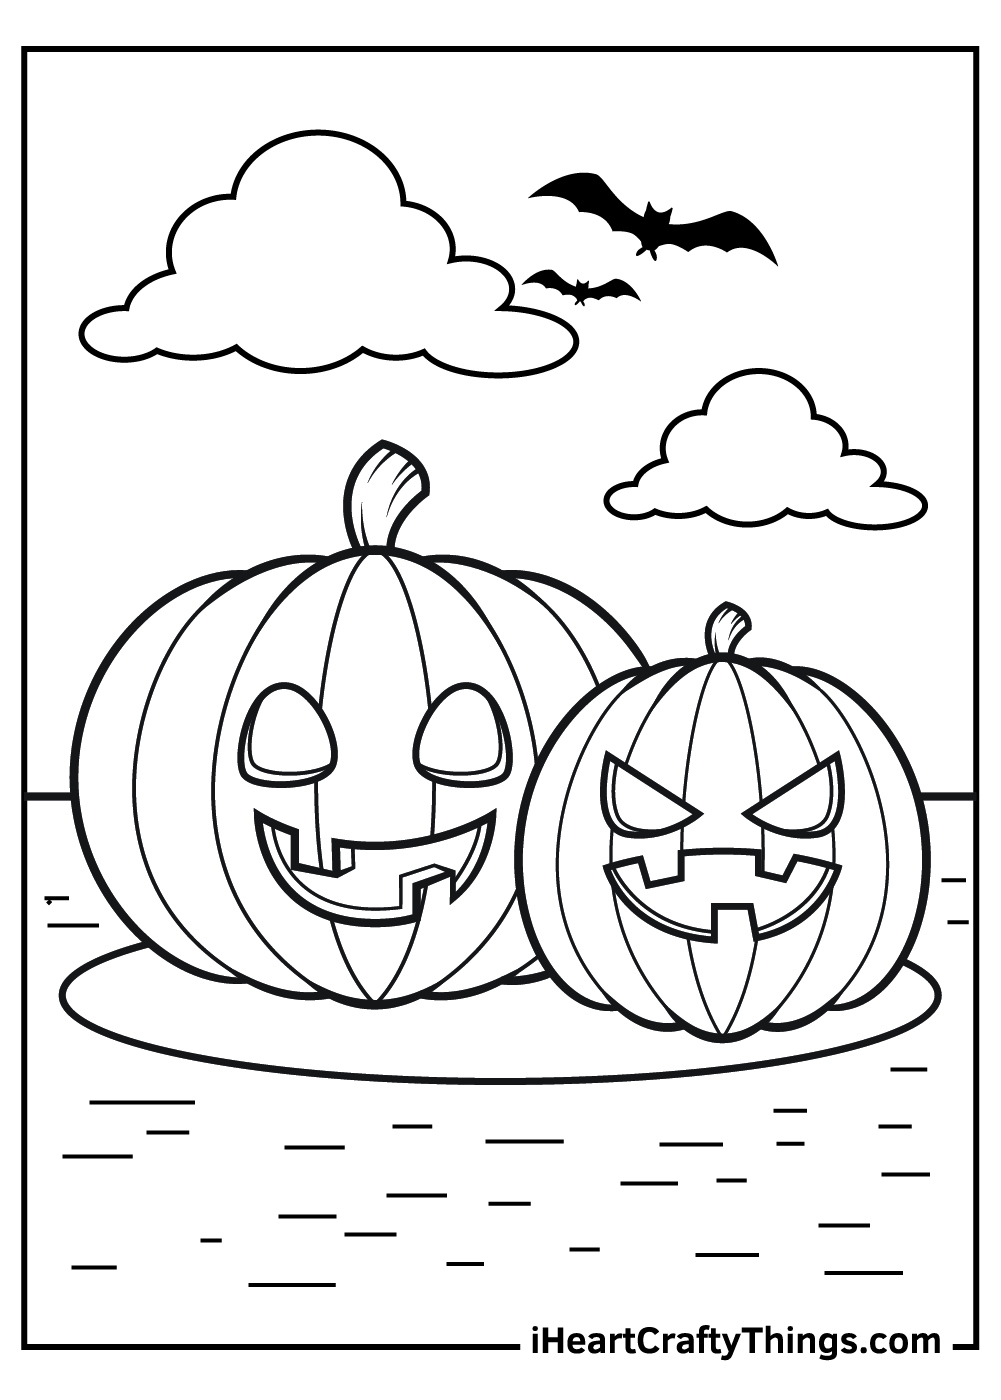 jack o lantern coloring pages for kids free